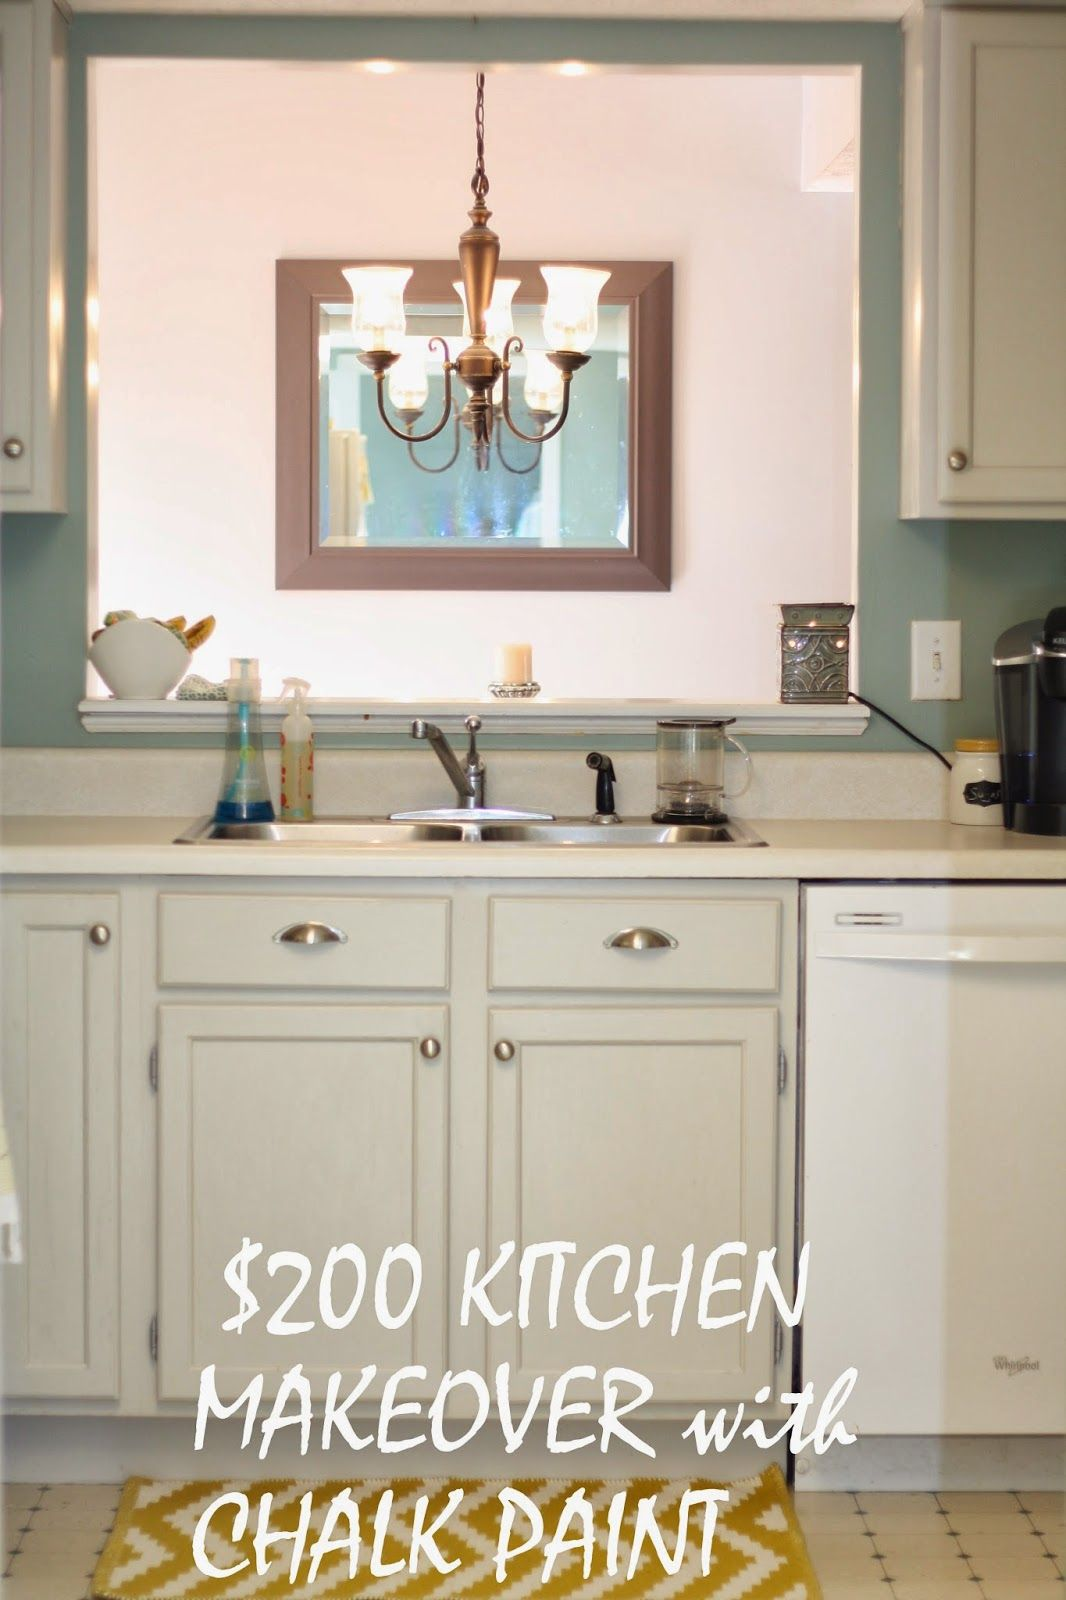 Chalk Paint Kitchen Cabinets With Maison Blanche In Silver Mink! No Priming,  No Sanding